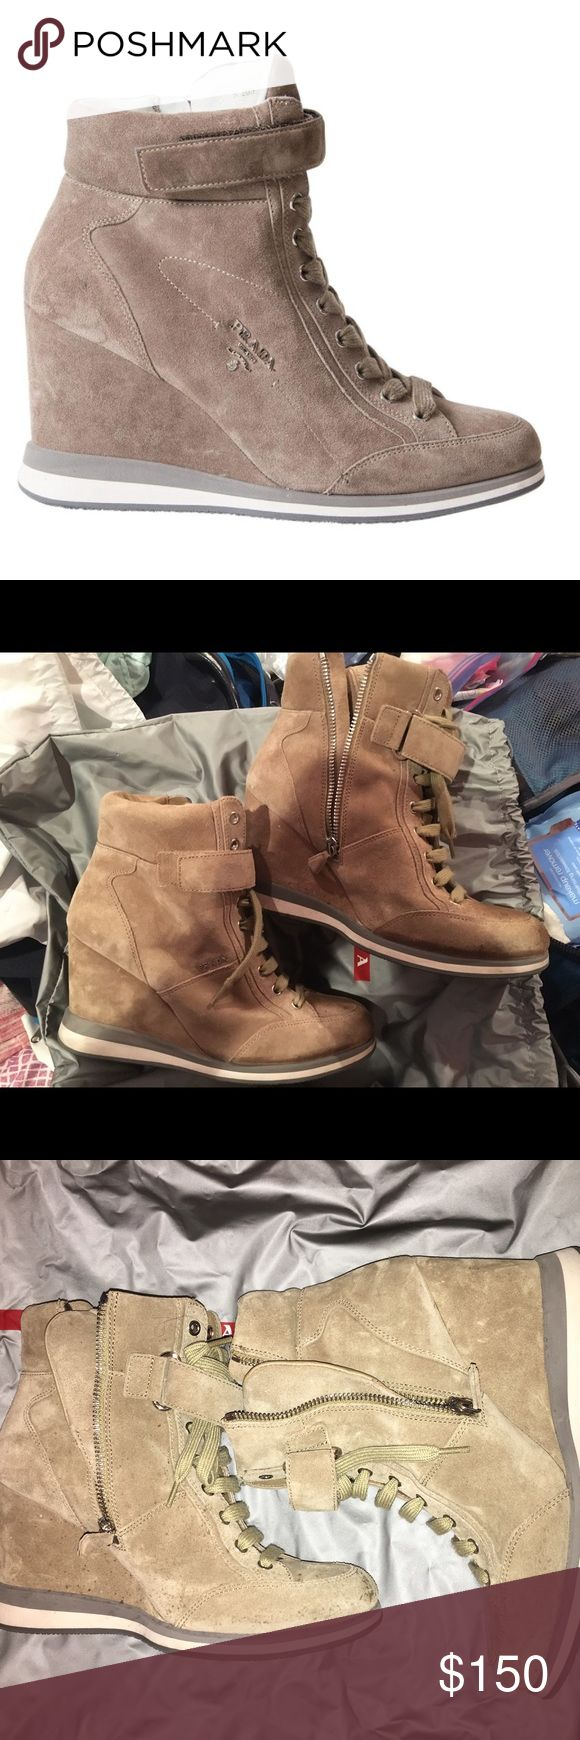 Prada Suede Beige Wedge Sneaker They have some dots because of a drink Prada Shoes Sneakers